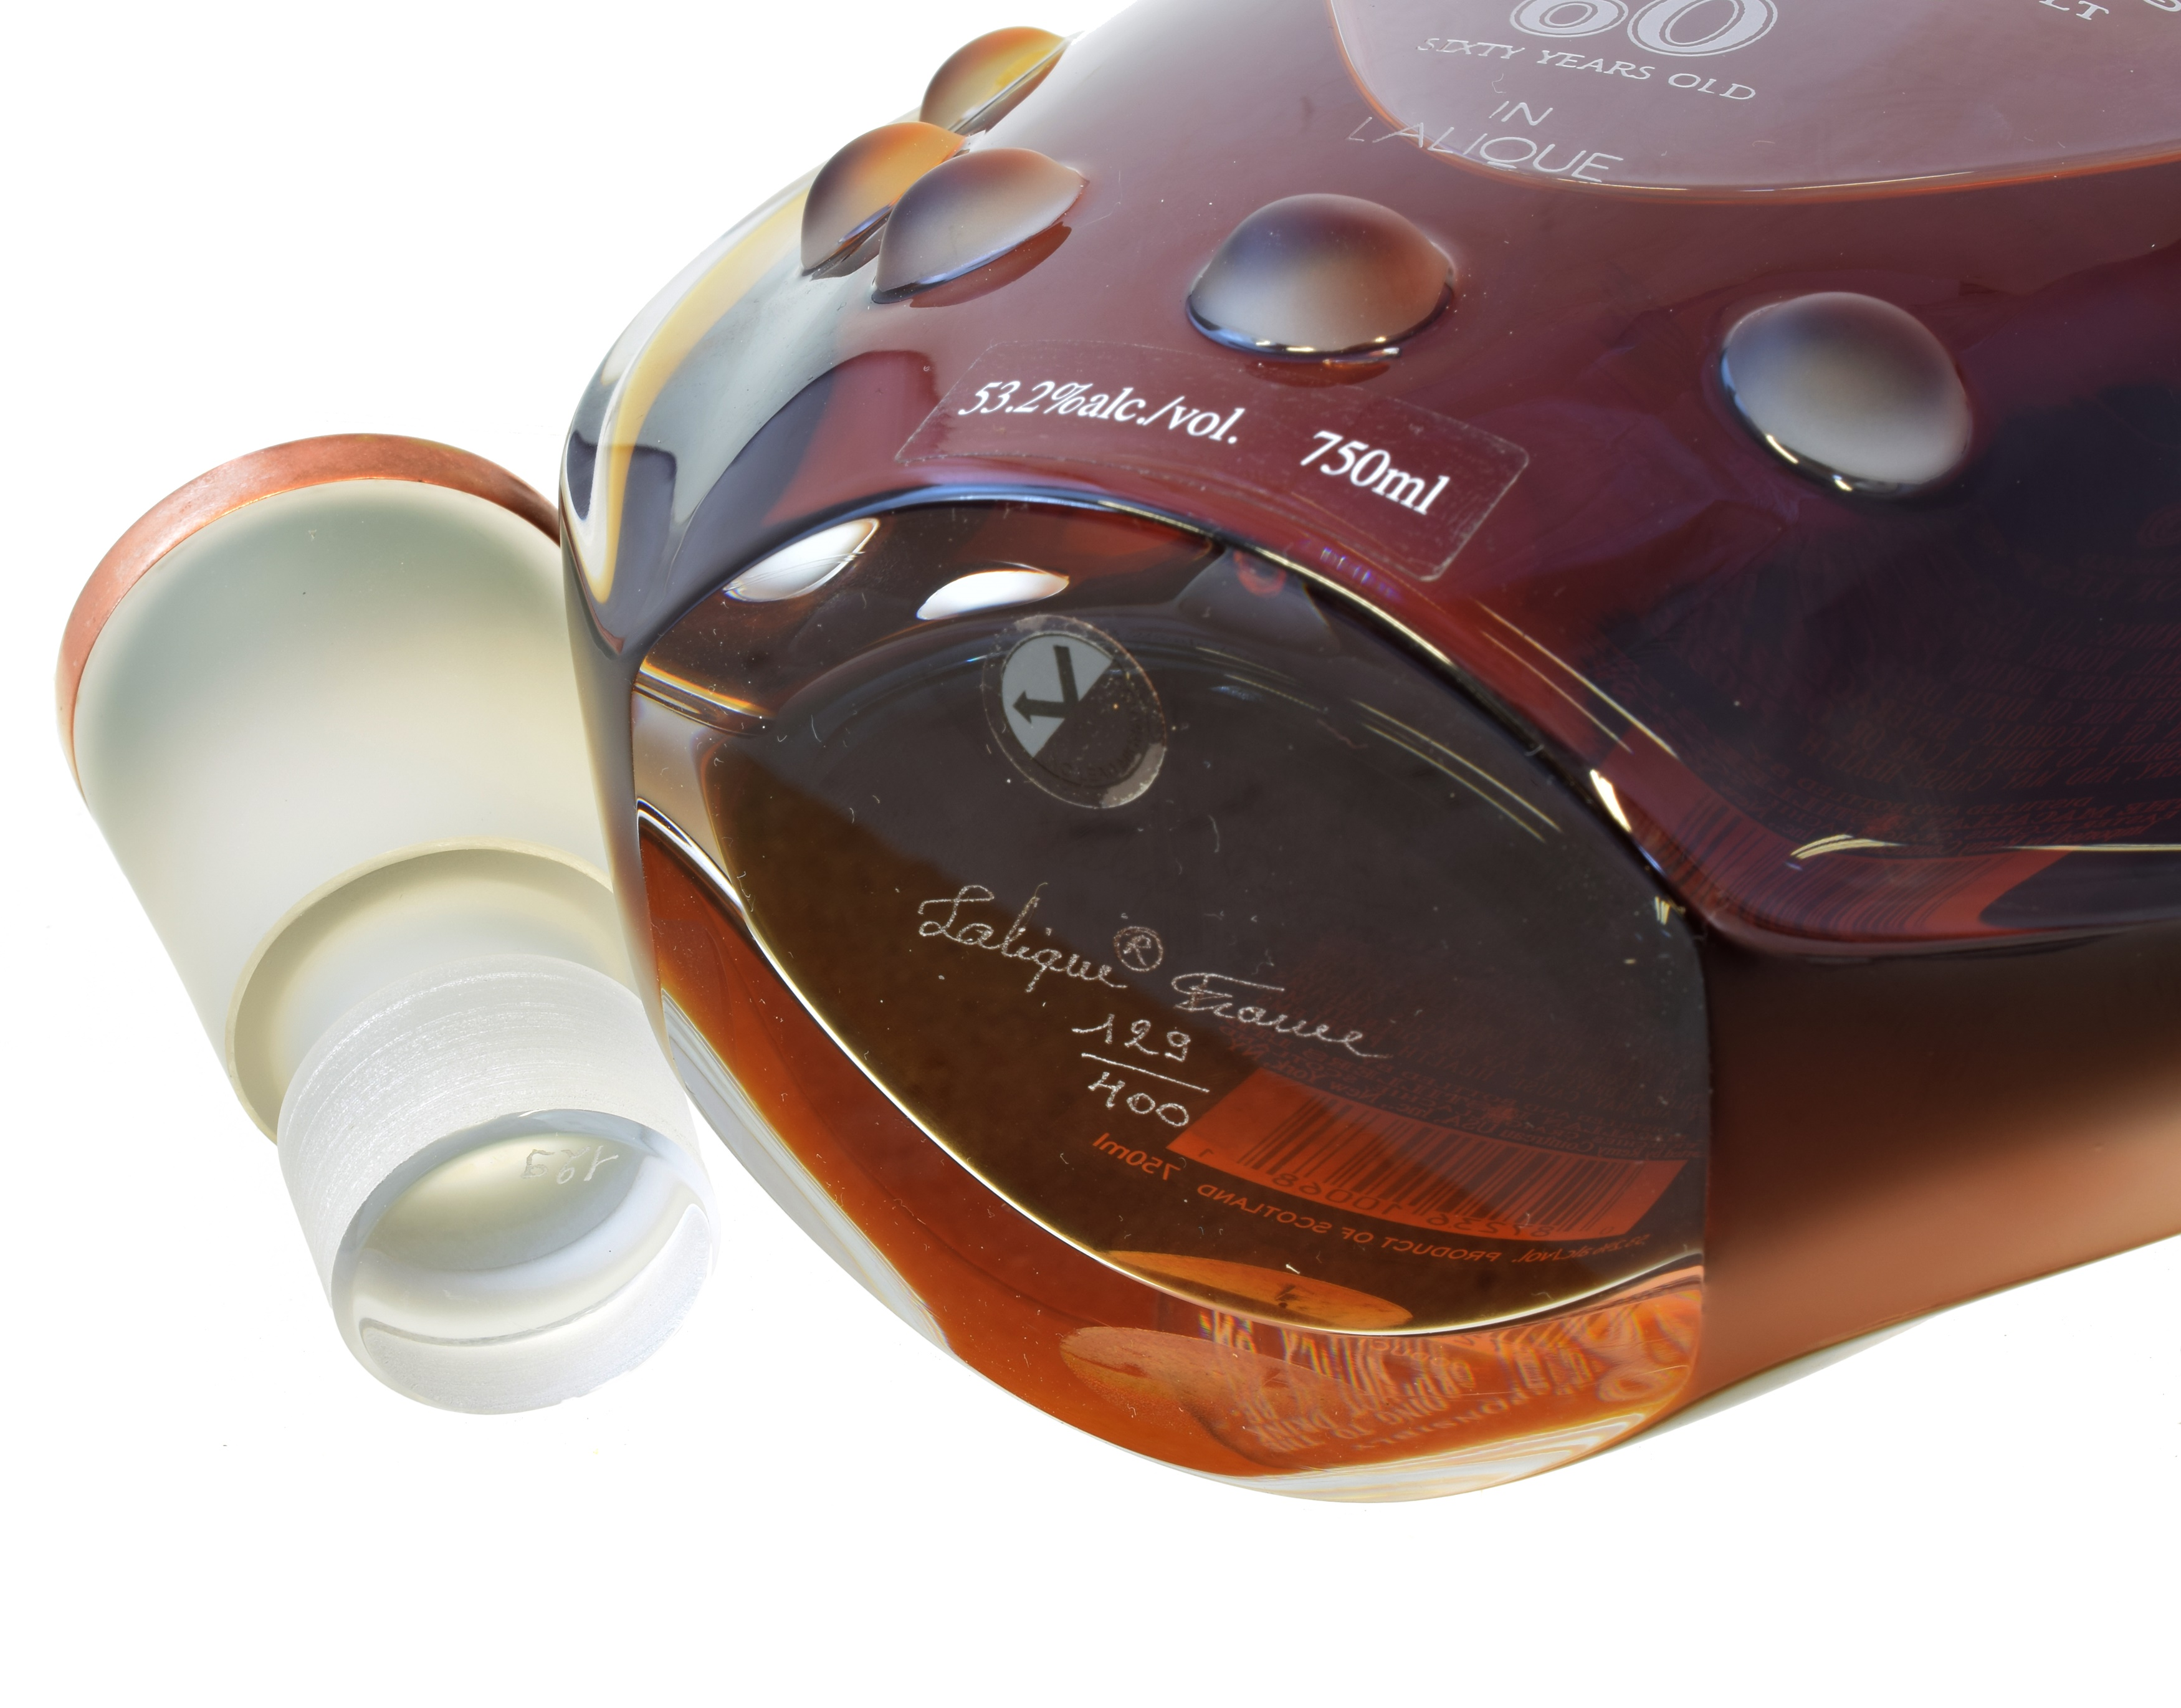 Macallan Lalique Limited Edition Whisky